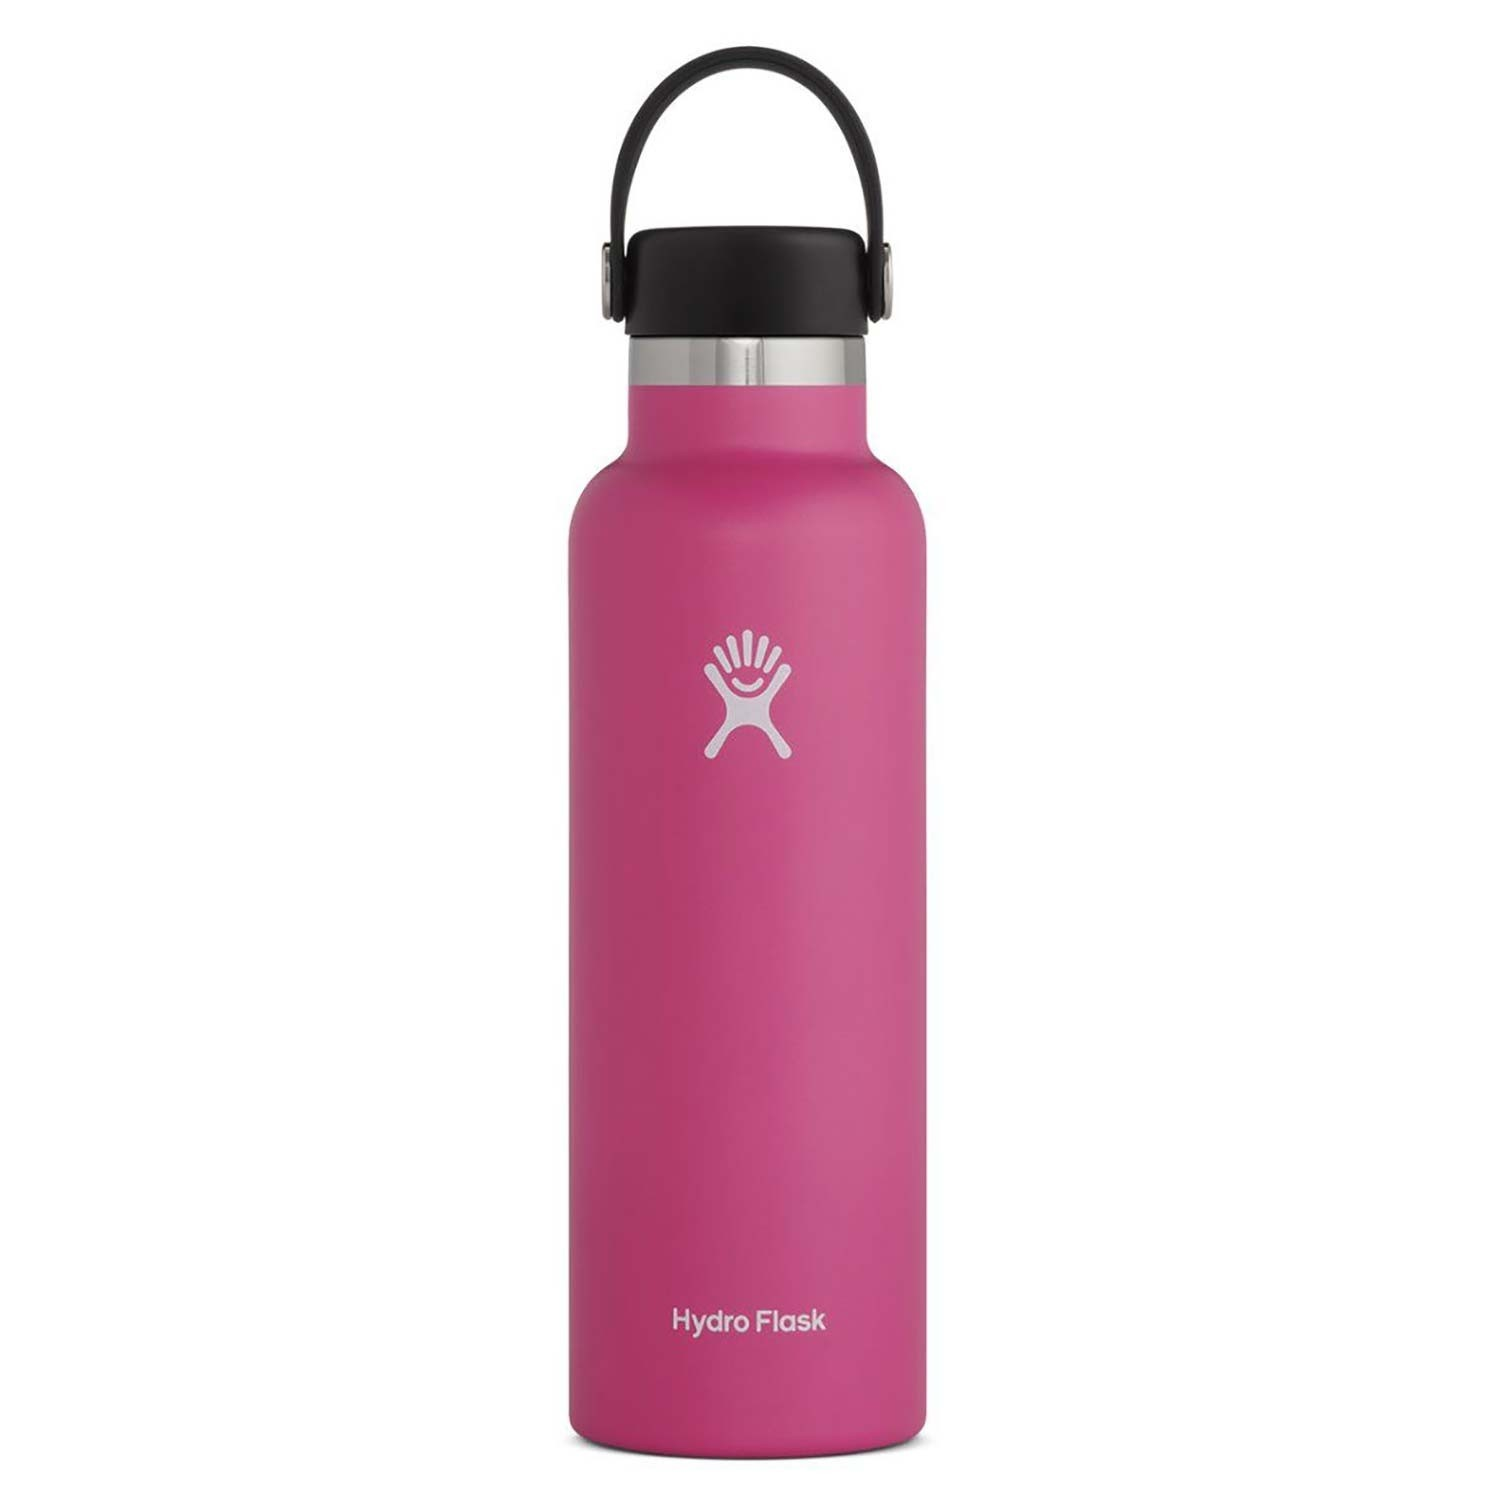 HYDRO FLASK - 21oz Insulated Bottle - Carnation